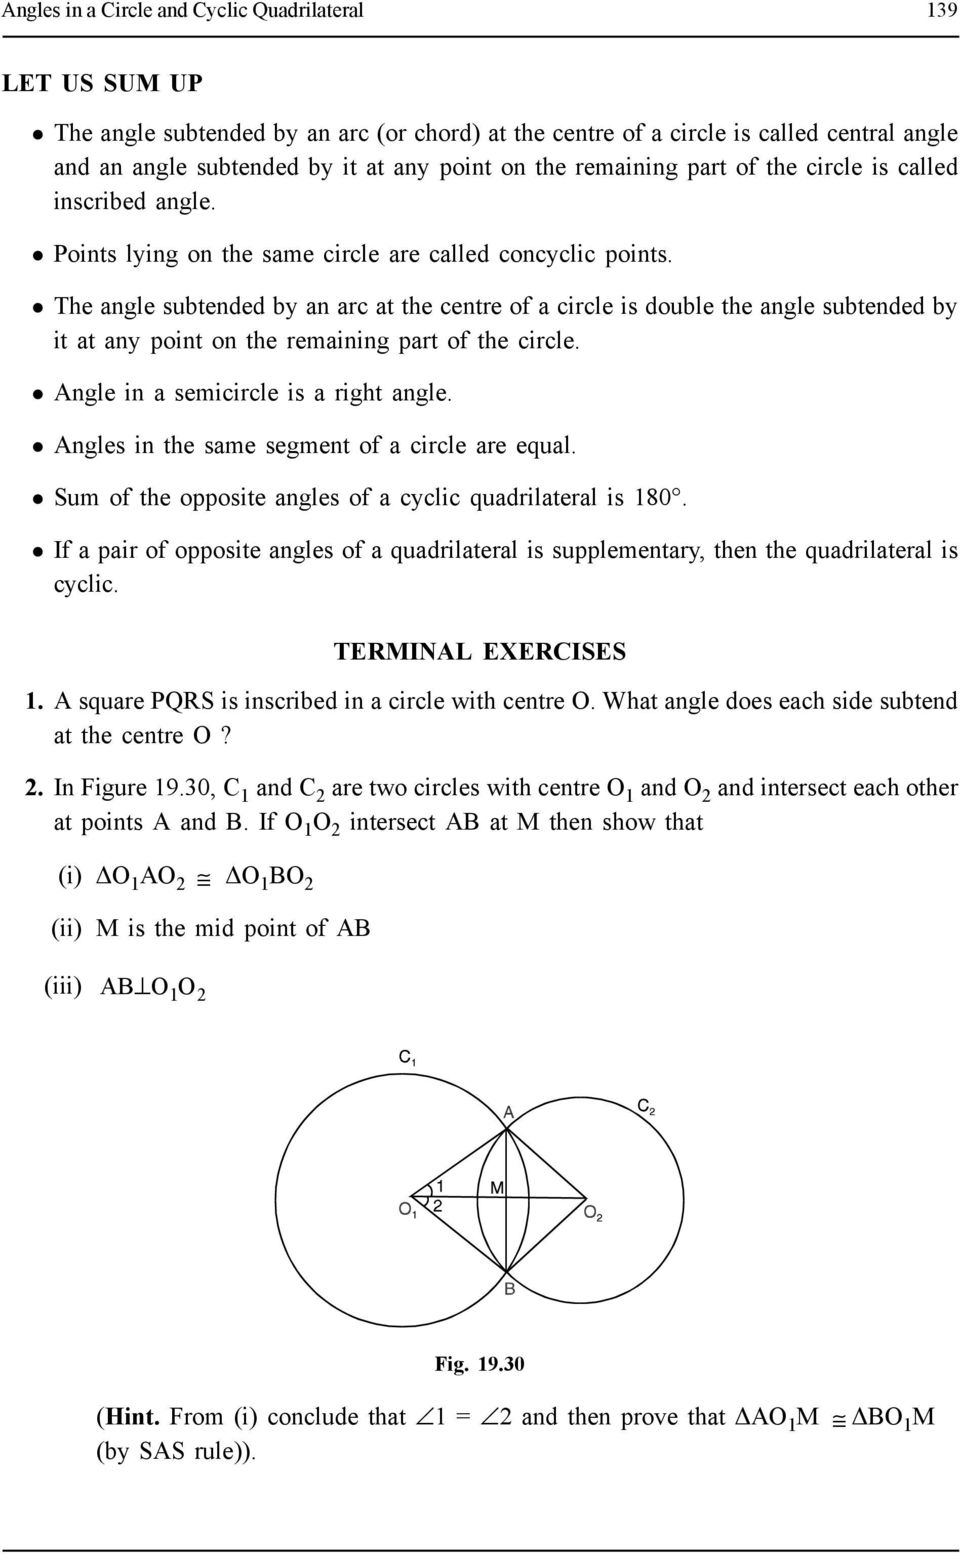 Angles In A Circle And Cyclic Quadrilateral Pdf